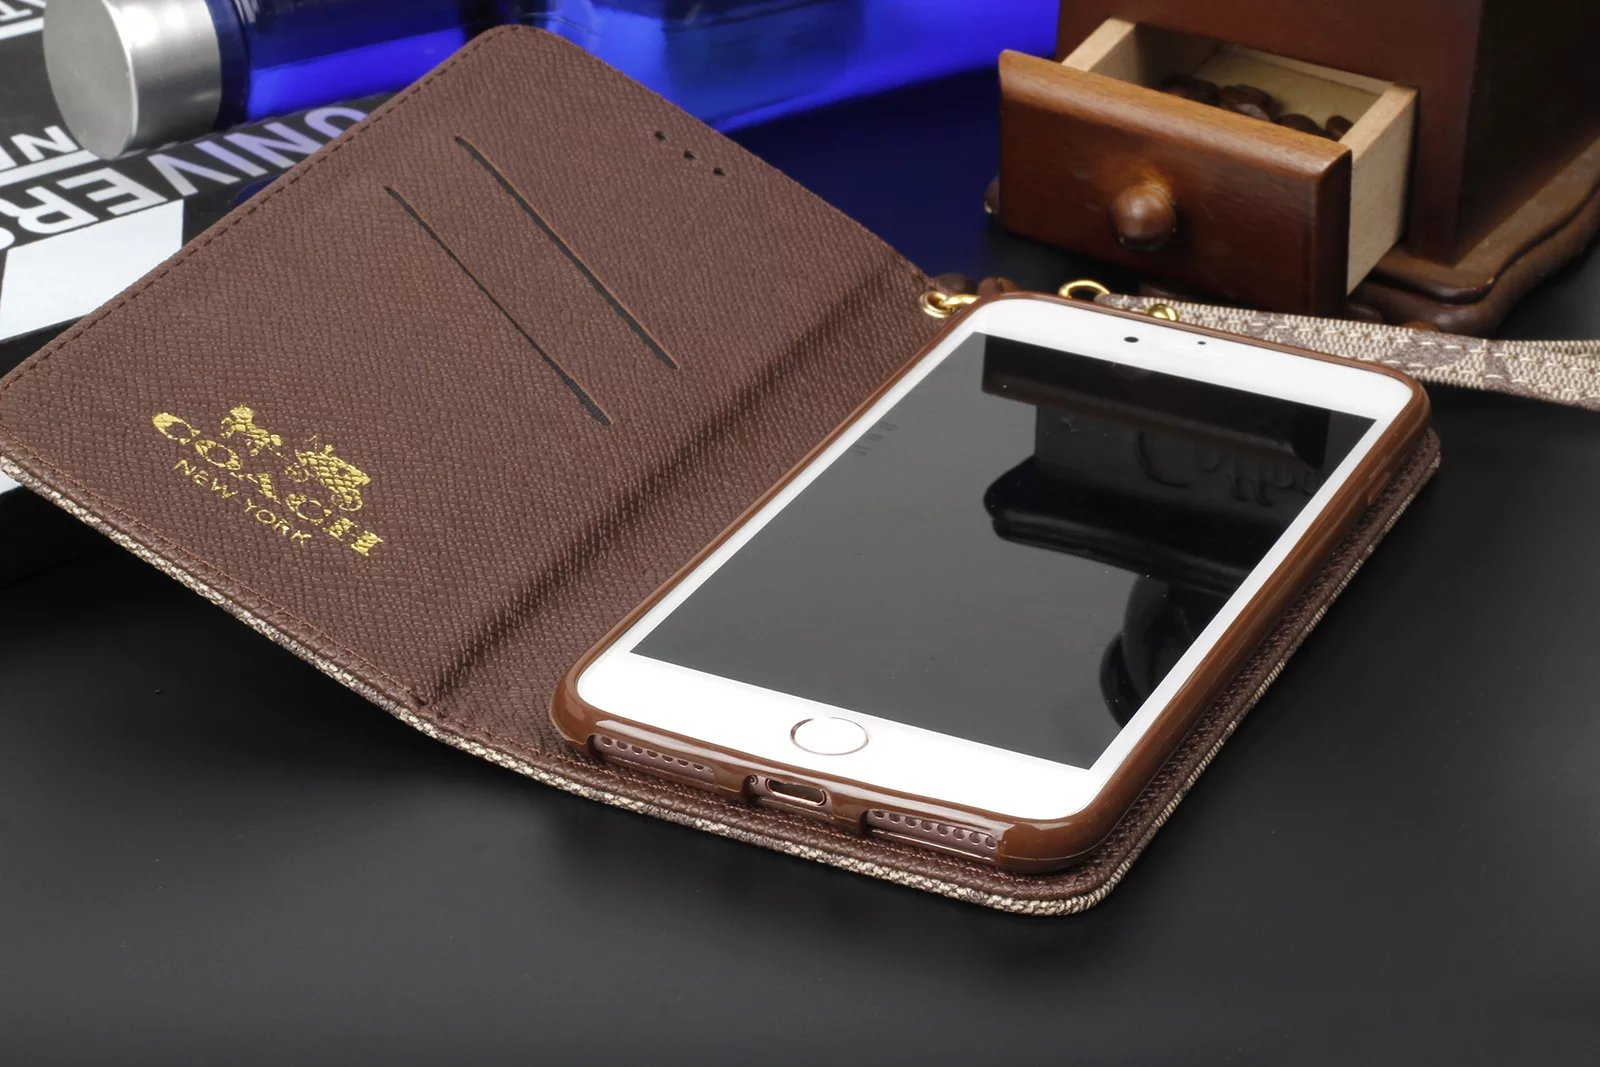 cover iphone 8 Plus iphone 8 Plus mobile cover coach iphone 8 Plus case make your own iPhone 8 Plus case the best case for iPhone 8 Plus iphone 8 Plus fashion cases cell phone cases online mophie charging case iphone 8 Plus battery pack case